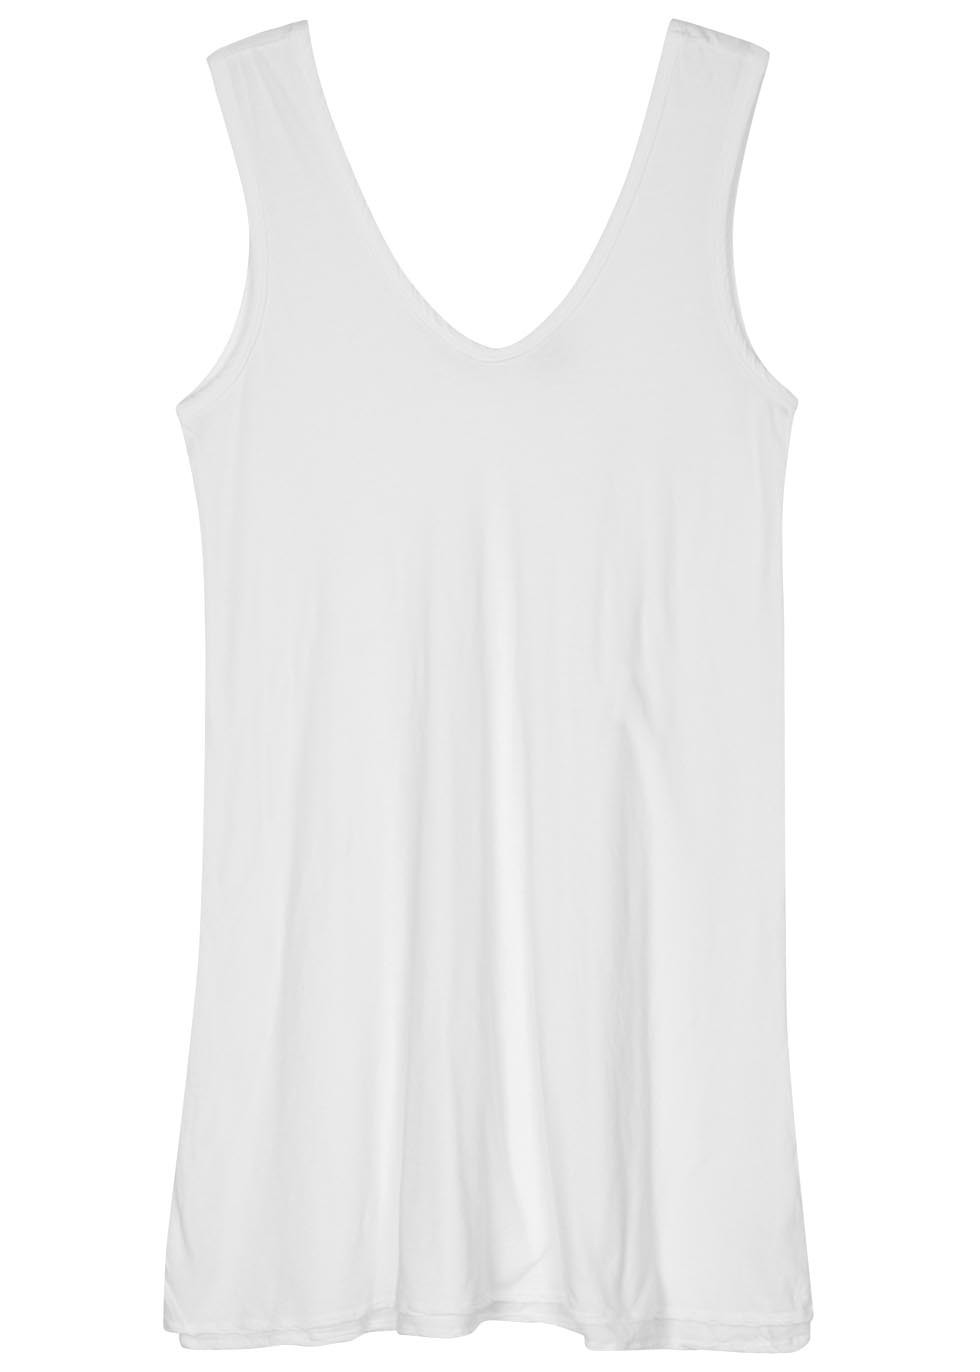 White Cotton Jersey Dress - length: mini; neckline: low v-neck; pattern: plain; sleeve style: sleeveless; style: vest; predominant colour: white; occasions: casual; fit: body skimming; fibres: cotton - 100%; sleeve length: sleeveless; pattern type: fabric; pattern size: standard; texture group: jersey - stretchy/drapey; season: s/s 2016; wardrobe: basic